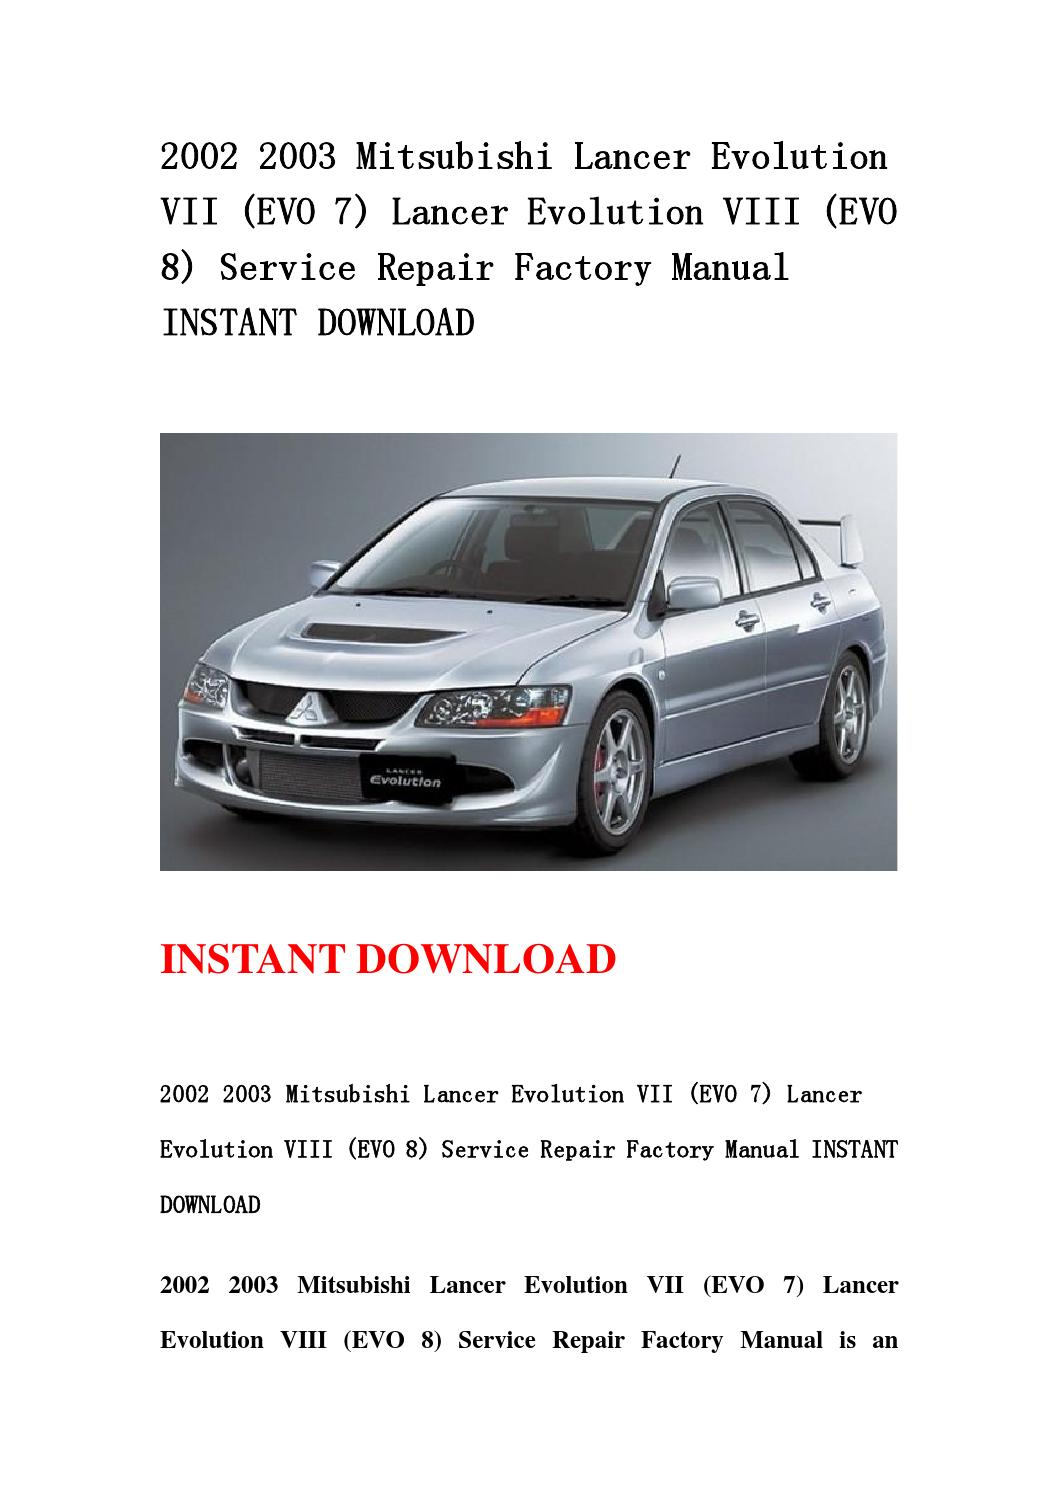 2002 2003 mitsubishi lancer evolution vii (evo 7) lancer evolution viii (evo  8) service repair facto by jshenmsenf njsjefhn - issuu